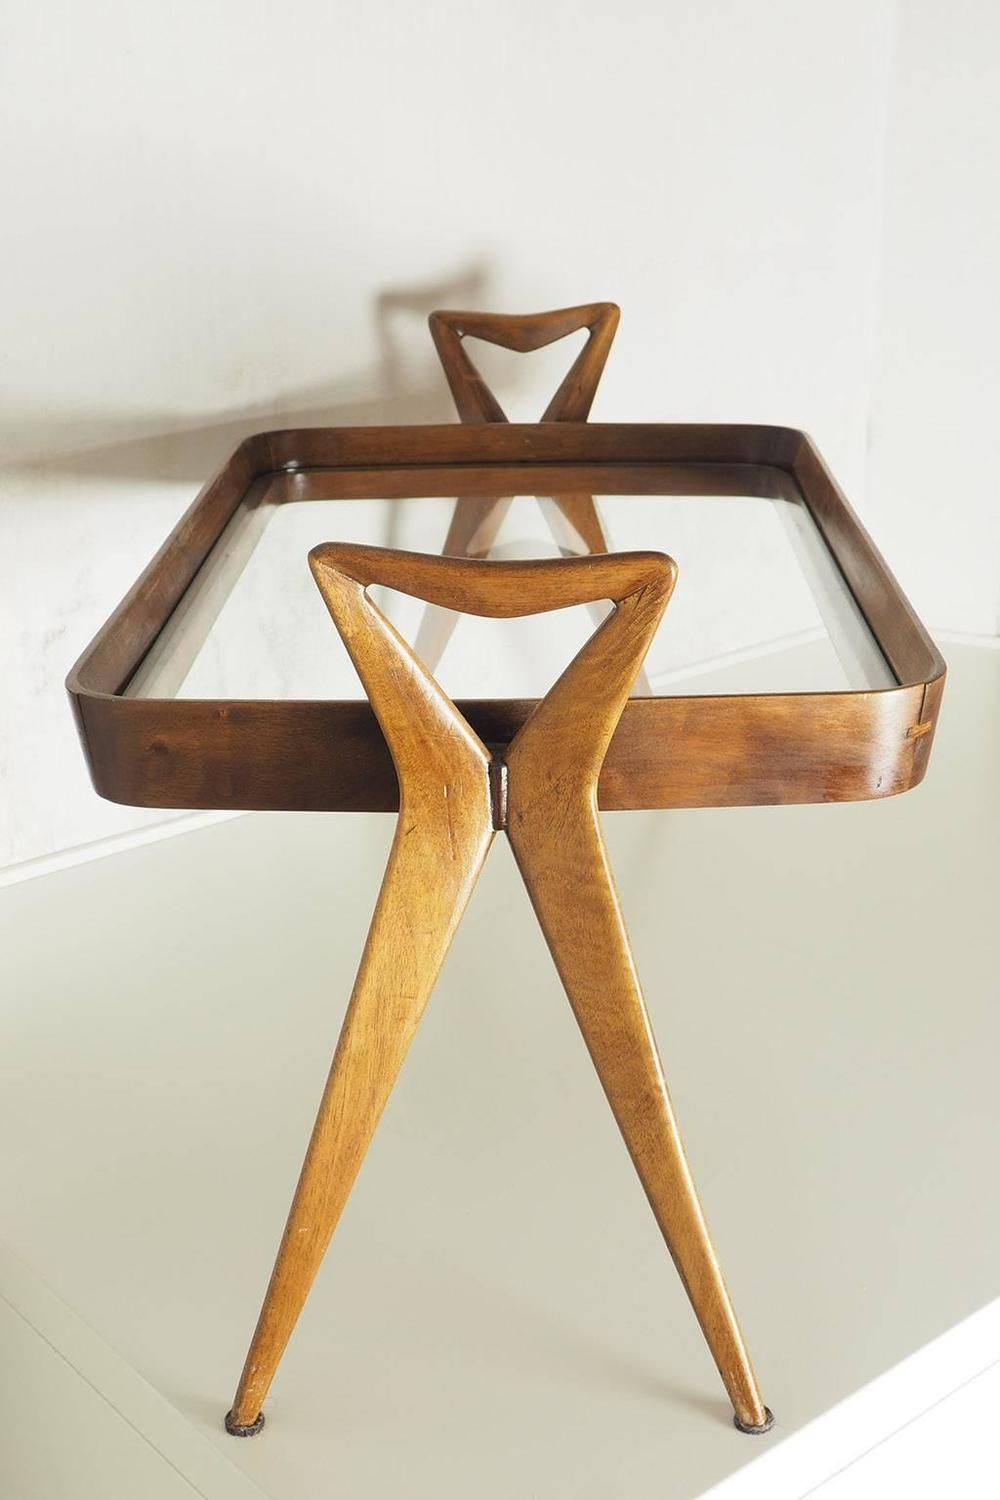 Rare original beech stained chair by eugene gaillard circa 1900 at - Ico Parisi Graceful And Rare Side Table Milan 1954